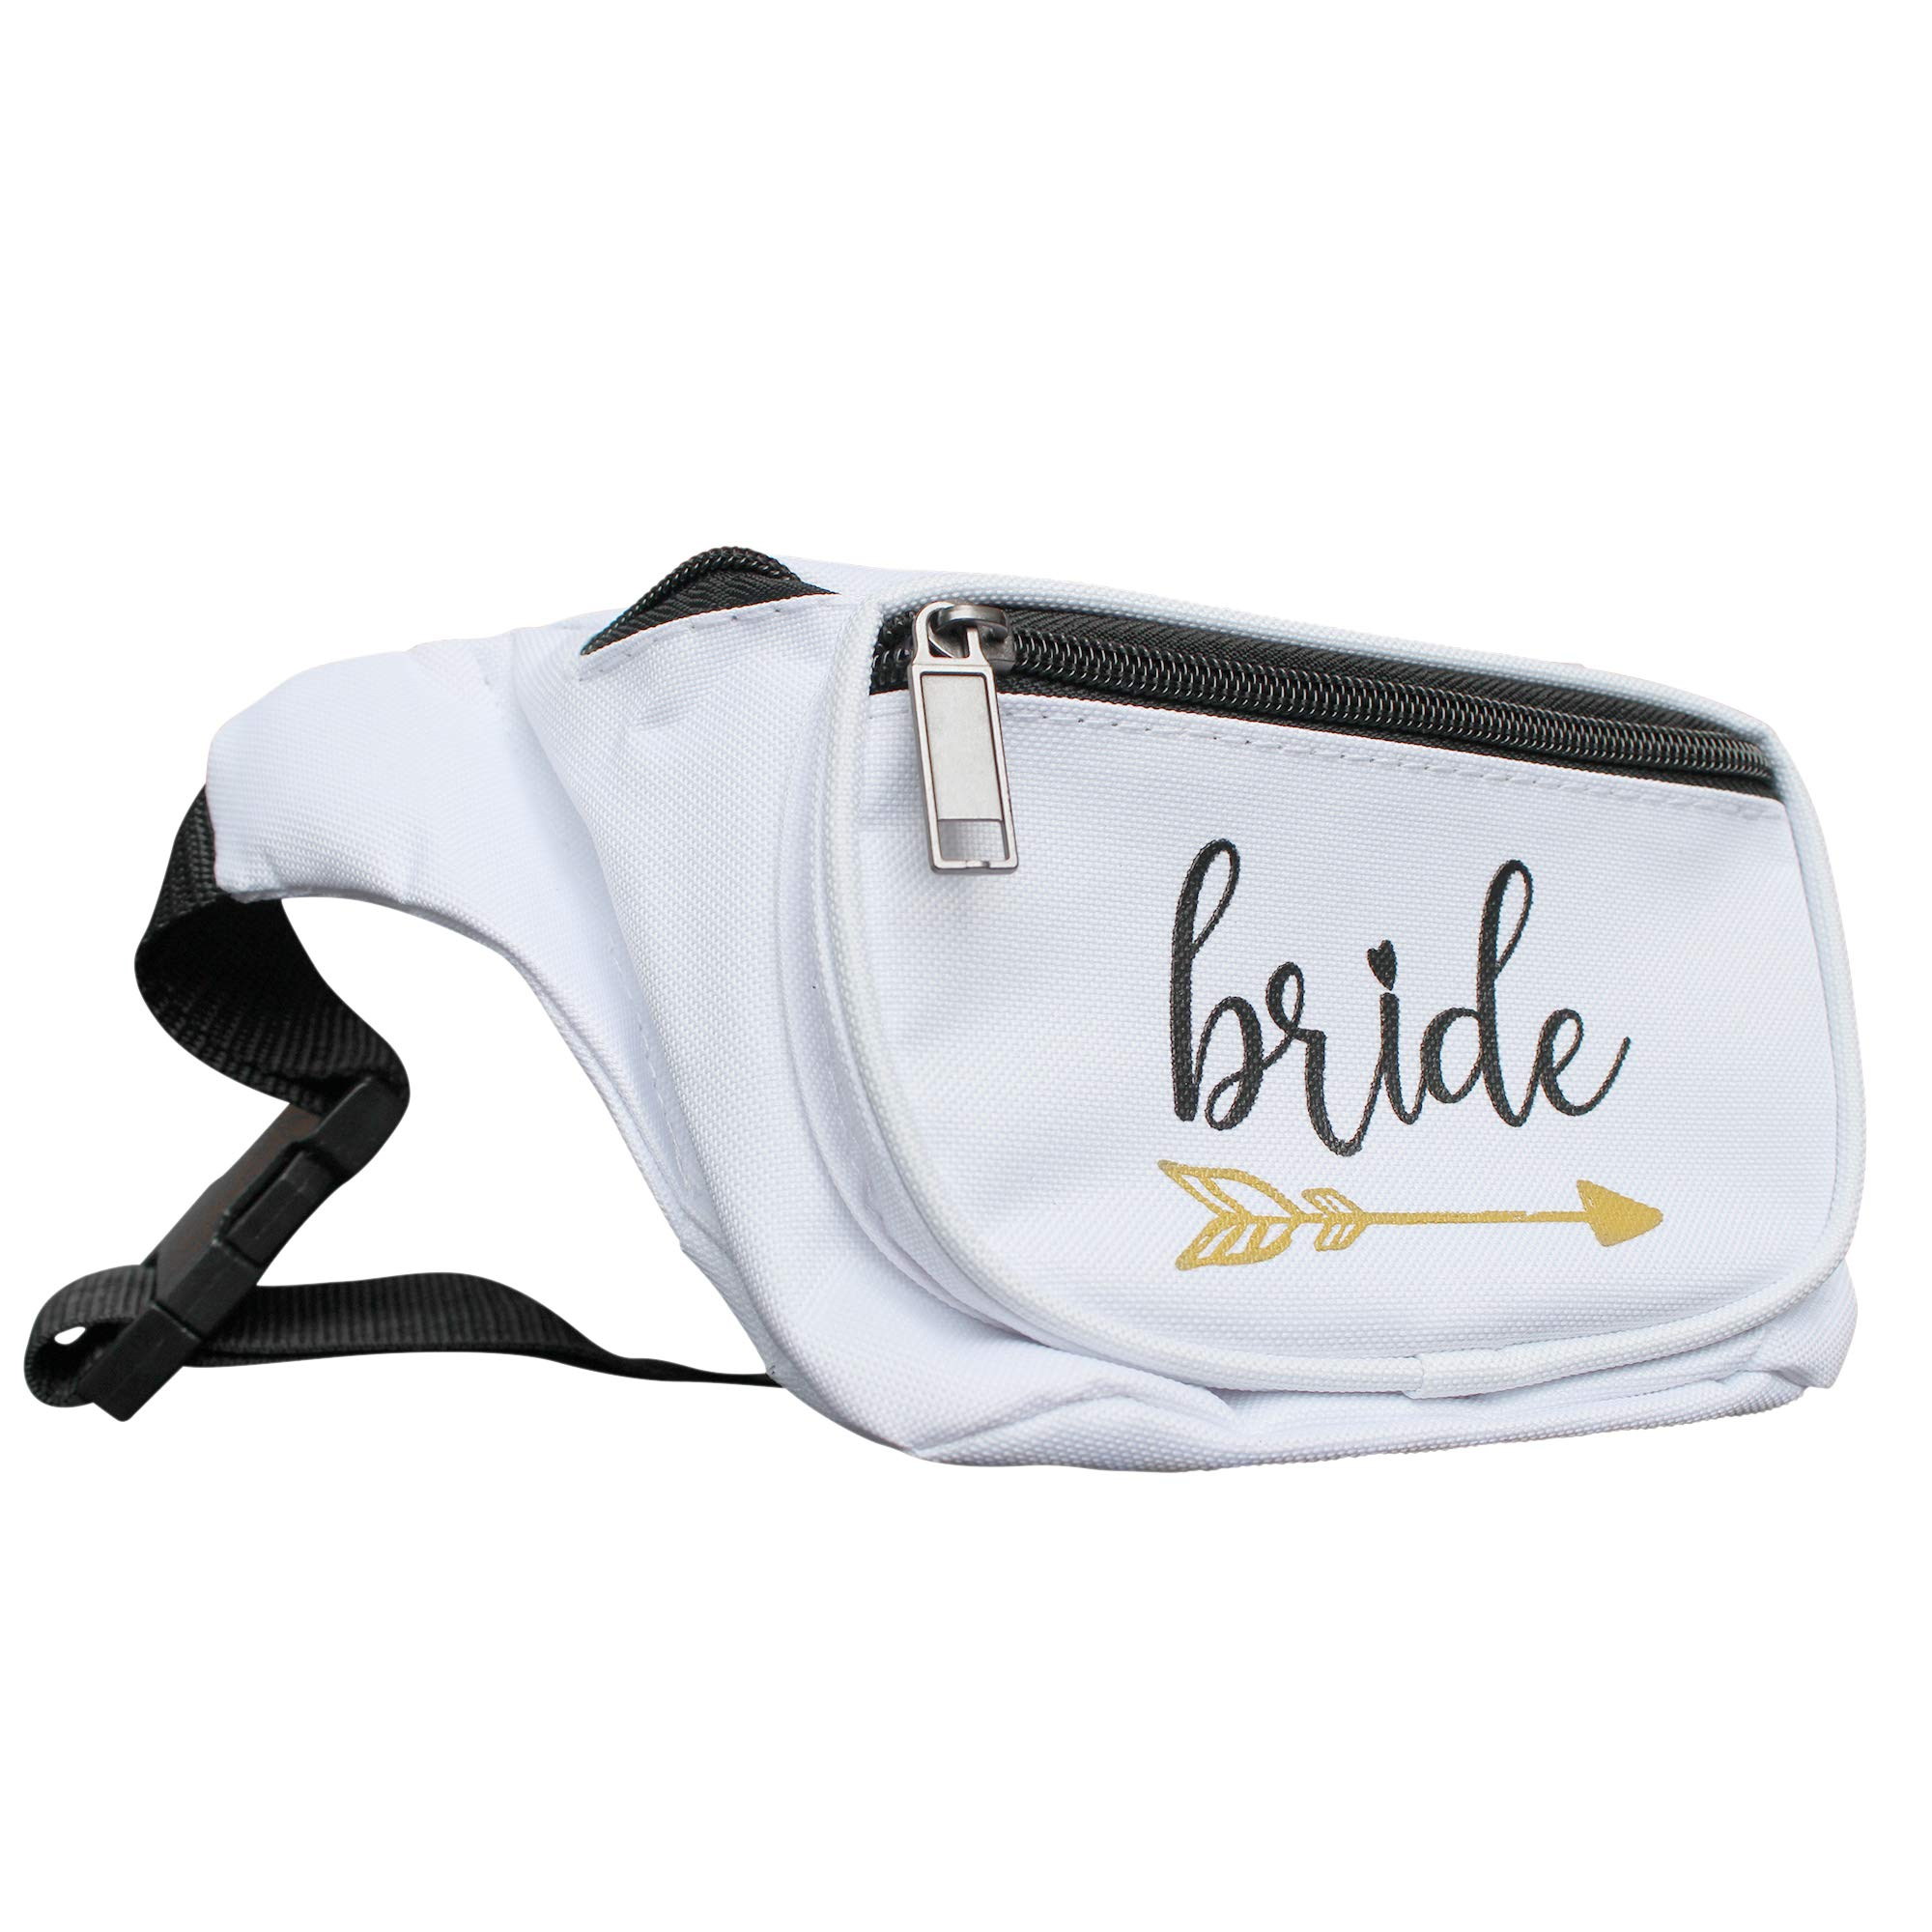 Put a Ring on It Bride Fanny Pack for Bachelorette Party. Fun Waist Fanny Pack Bachelorette Gift Accessory for Parties and Weddings. Perfect for The Bride and Bride Tribe.